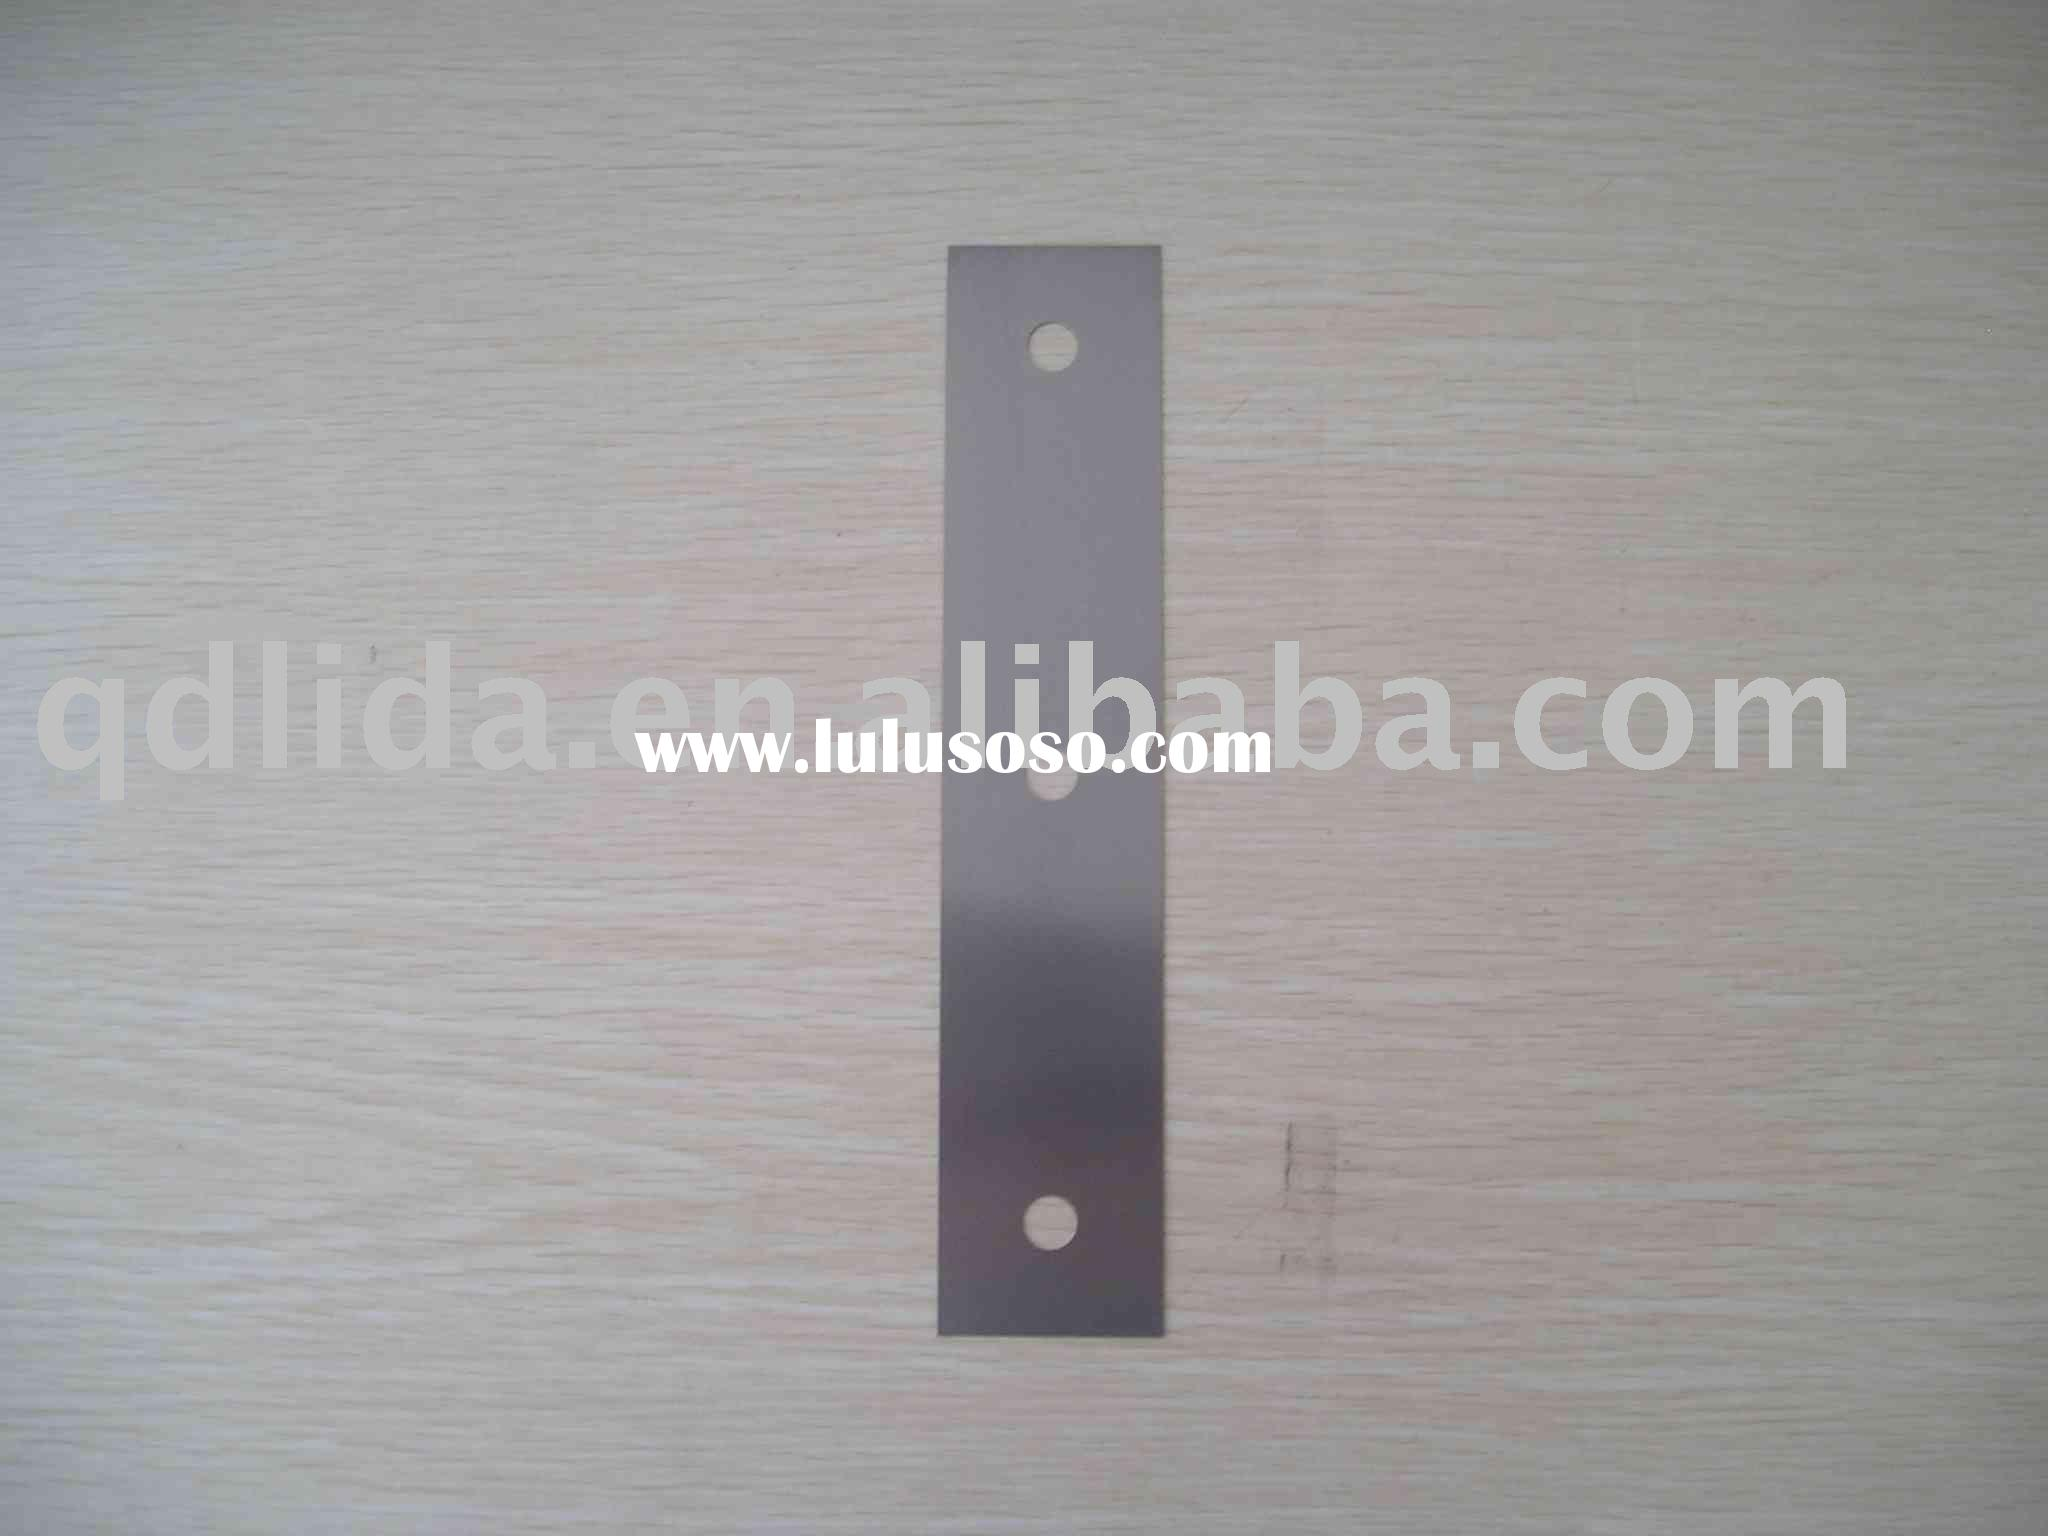 Electrical Silicon Steel Sheet Electrical Silicon Steel